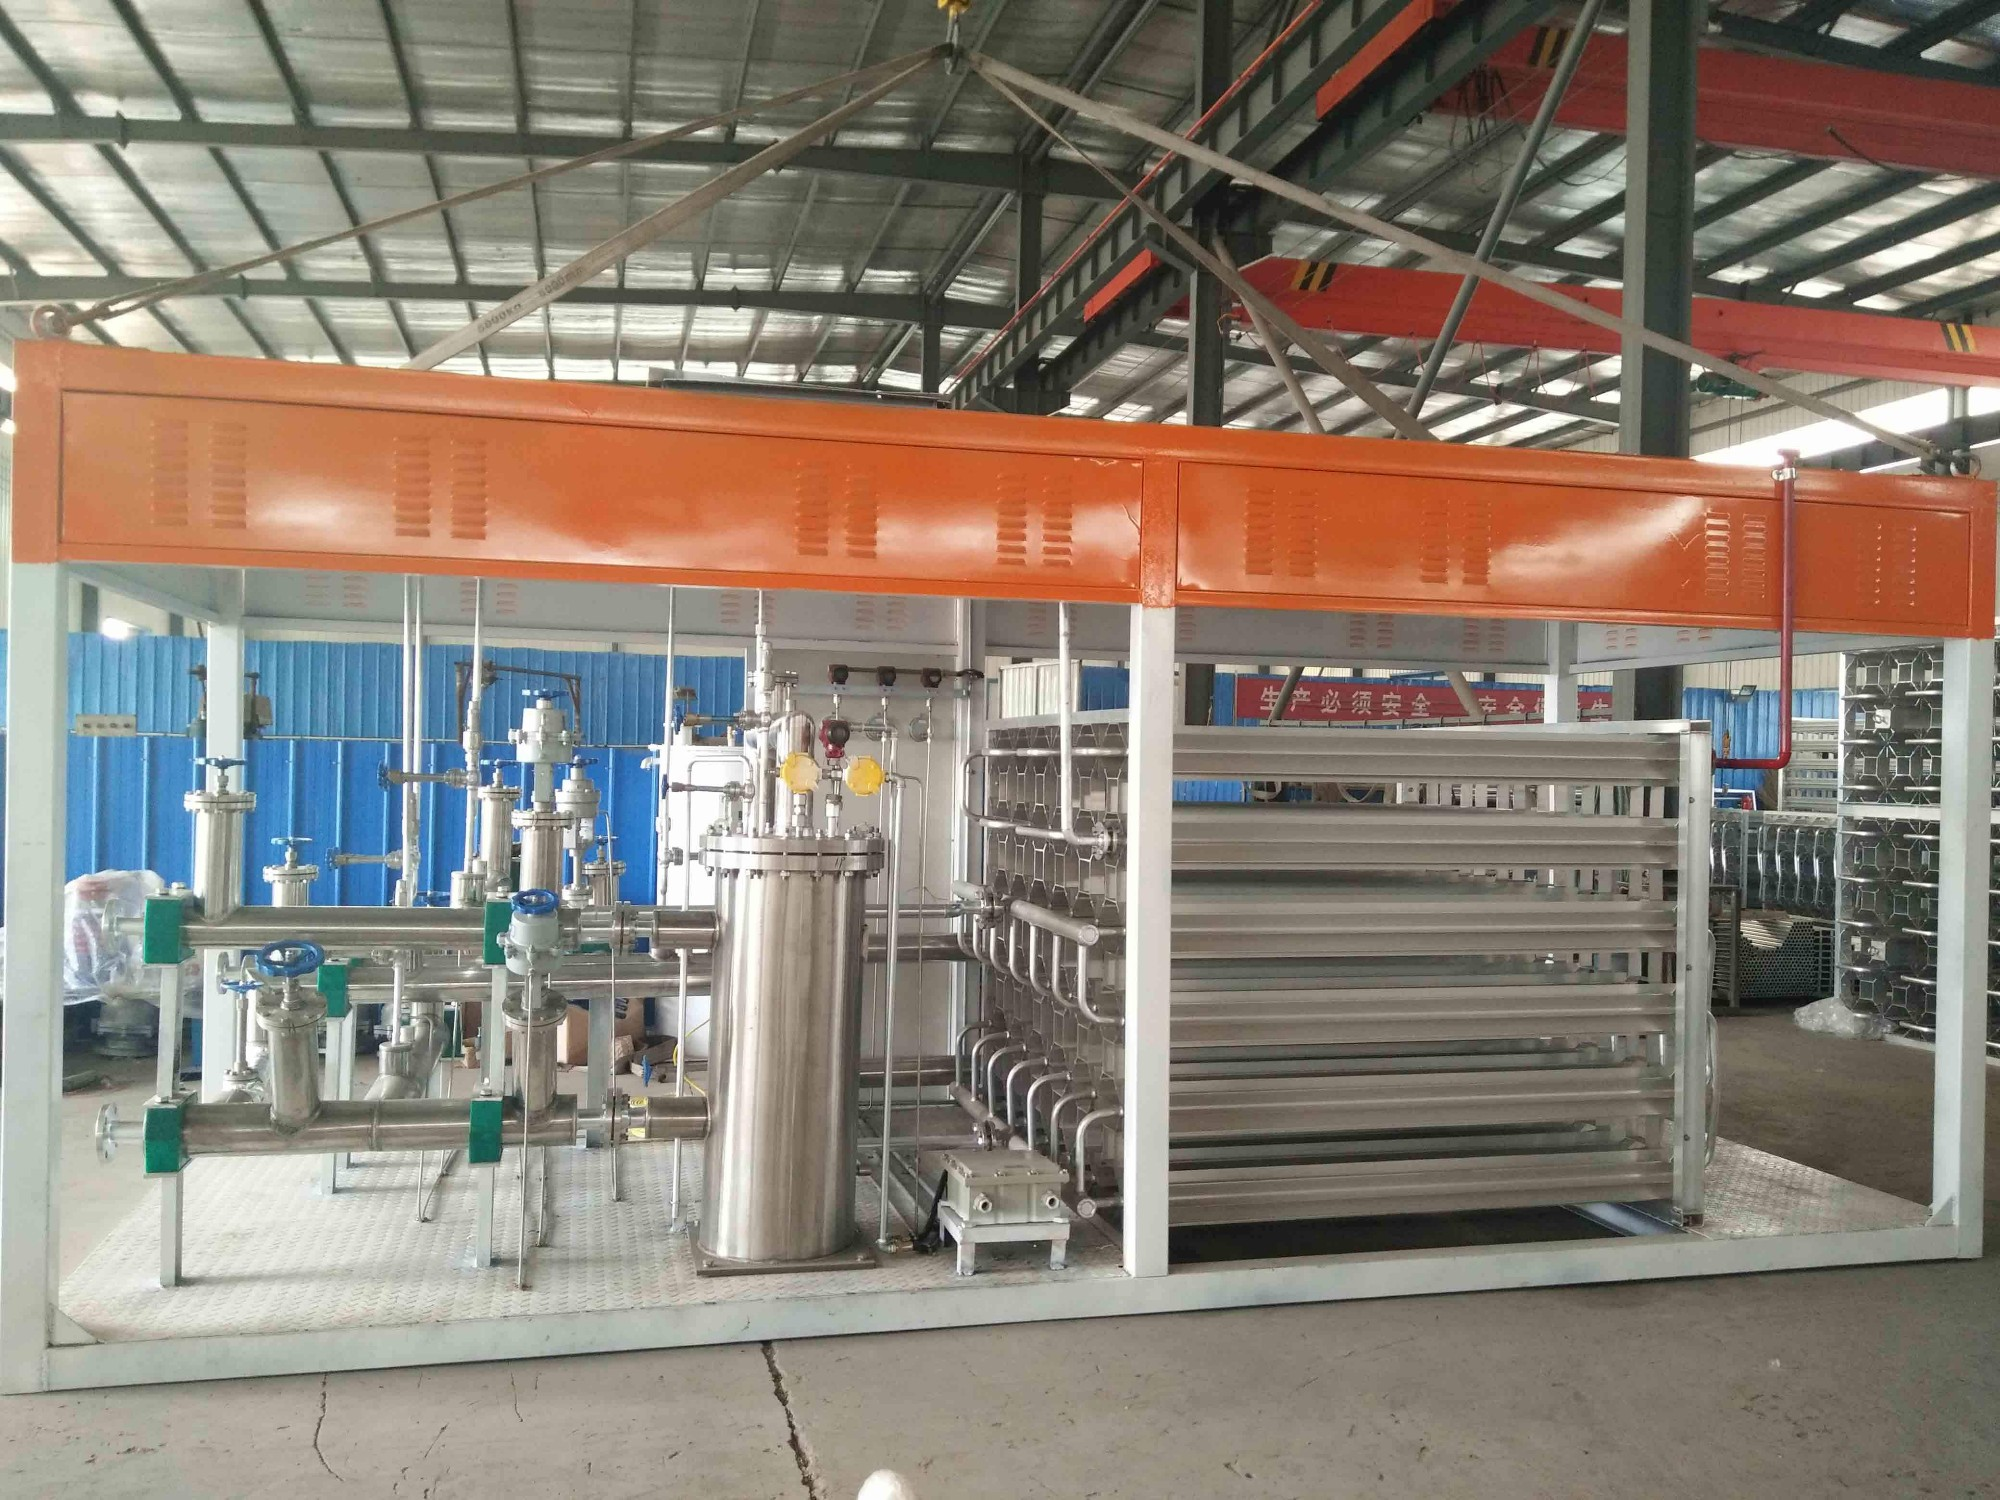 Integrated LNG Refilling Skid With Tank And Dispenser Manufacturers, Integrated LNG Refilling Skid With Tank And Dispenser Factory, Supply Integrated LNG Refilling Skid With Tank And Dispenser